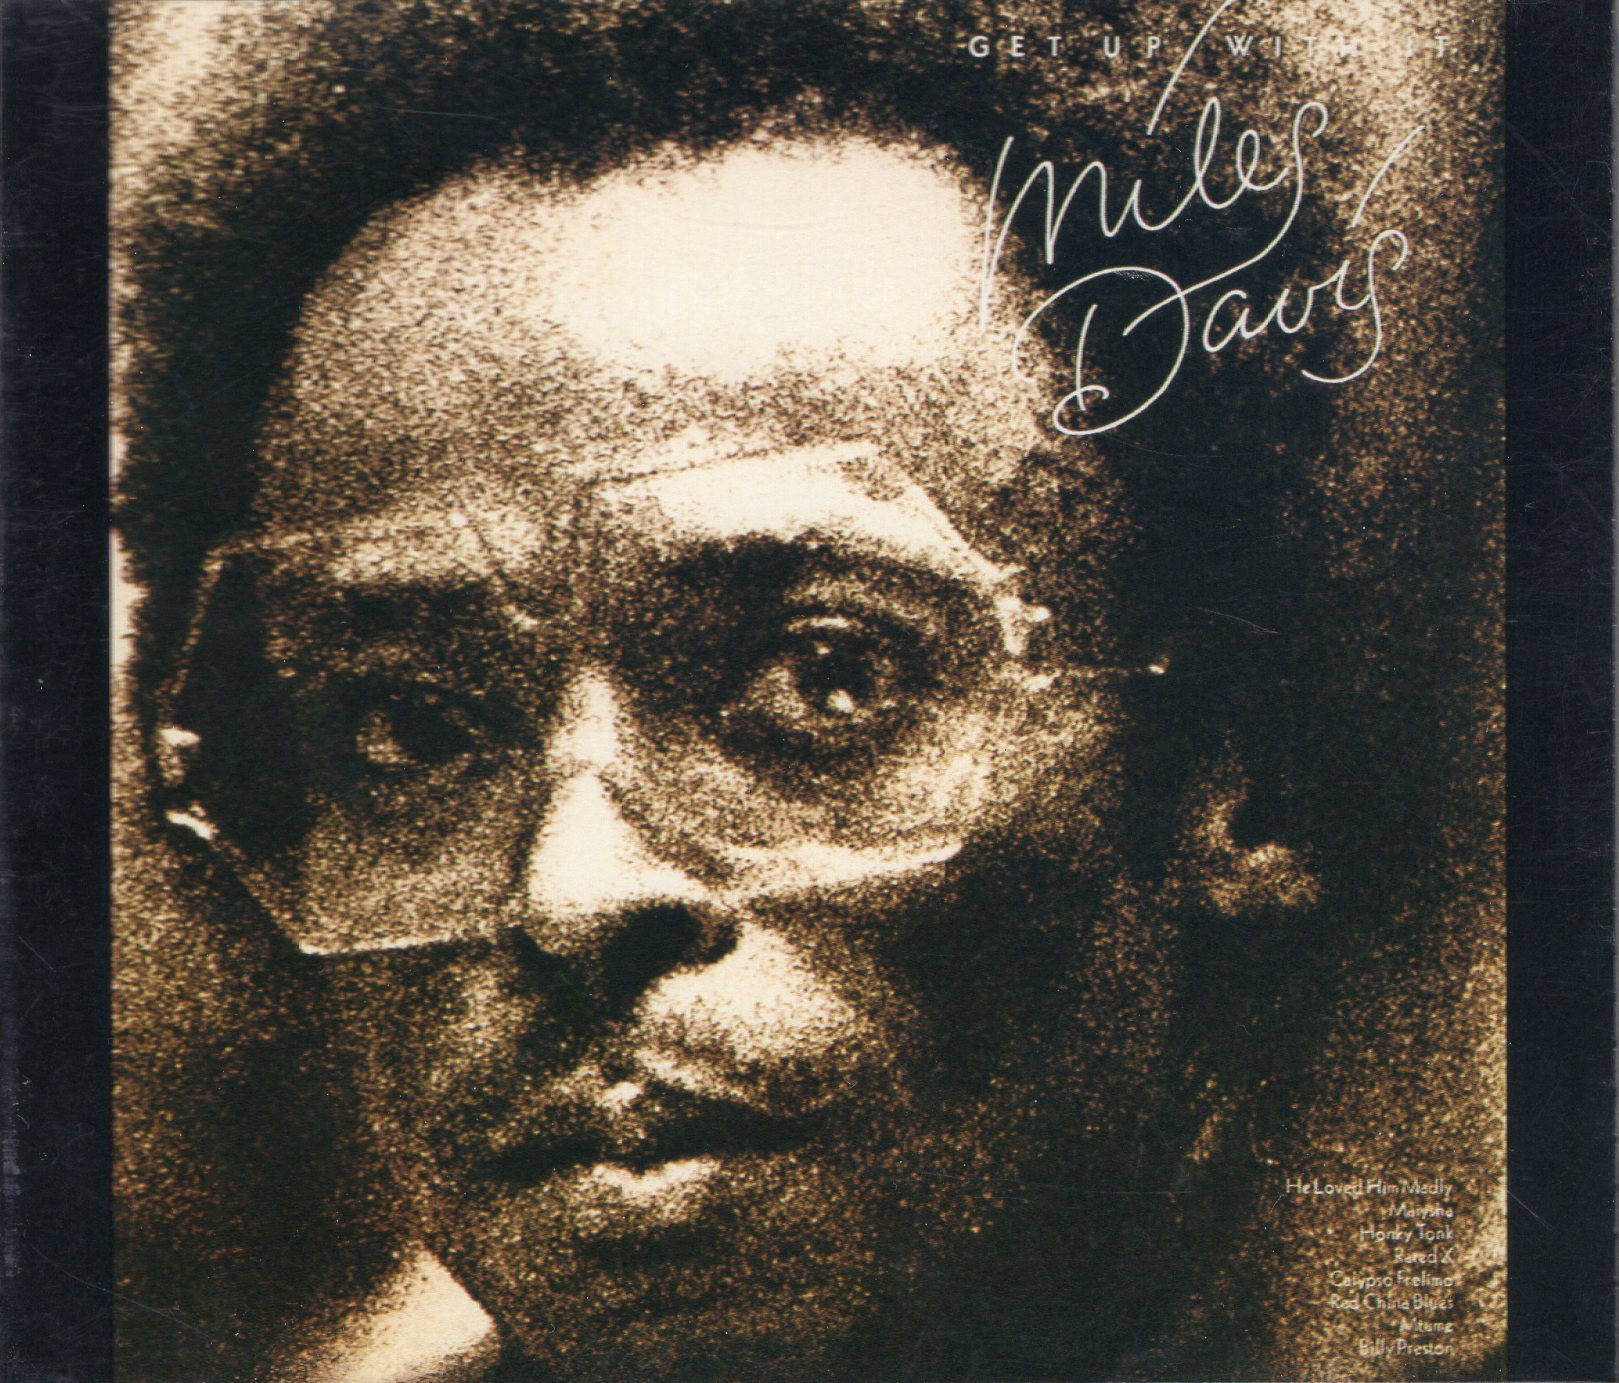 """Get Up With It"" Miles Davis"